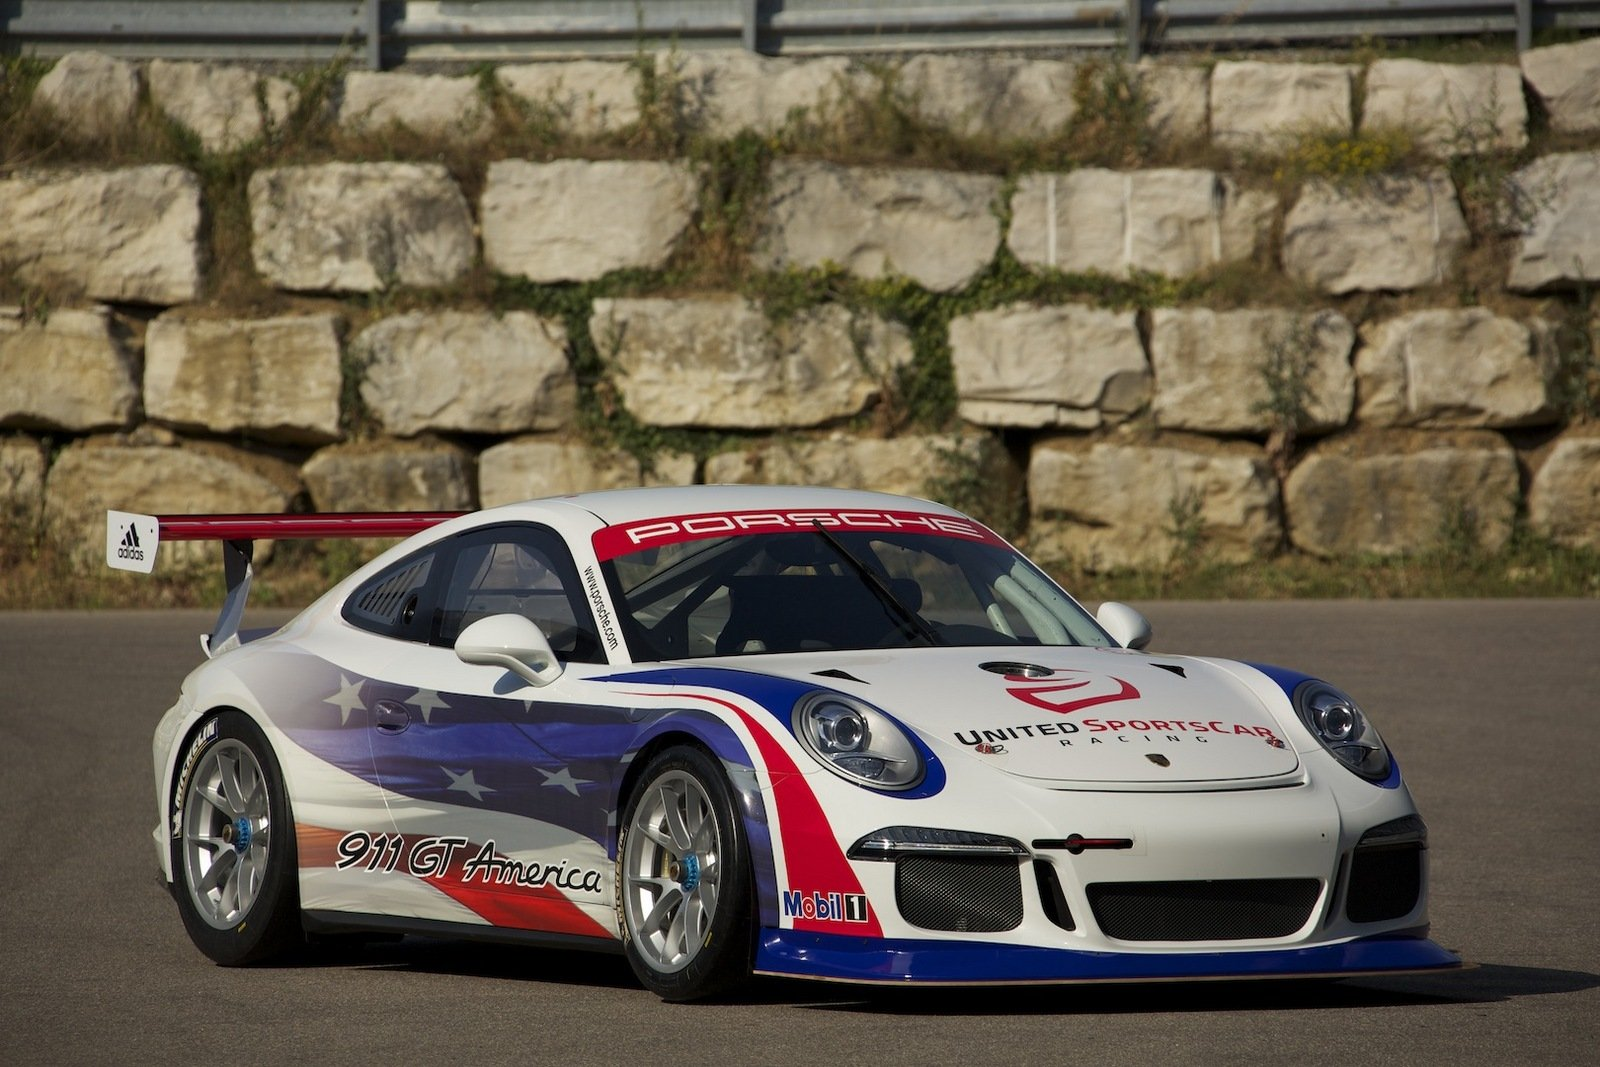 2014 Porsche 911 Gt America Review Top Speed